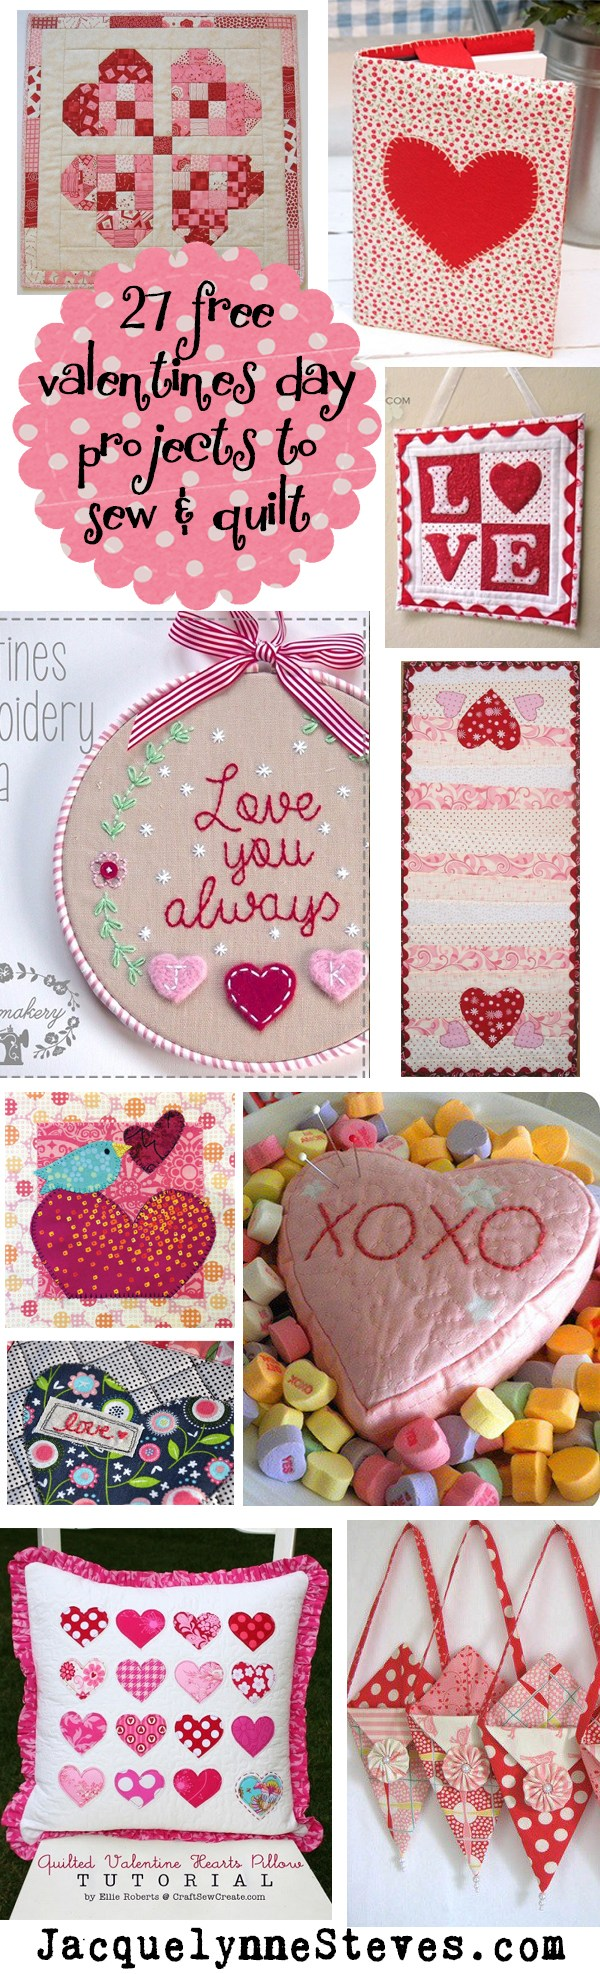 27 Free Valnetine's Day Projects to Sew and Quilt @ Jacquelynne Steves